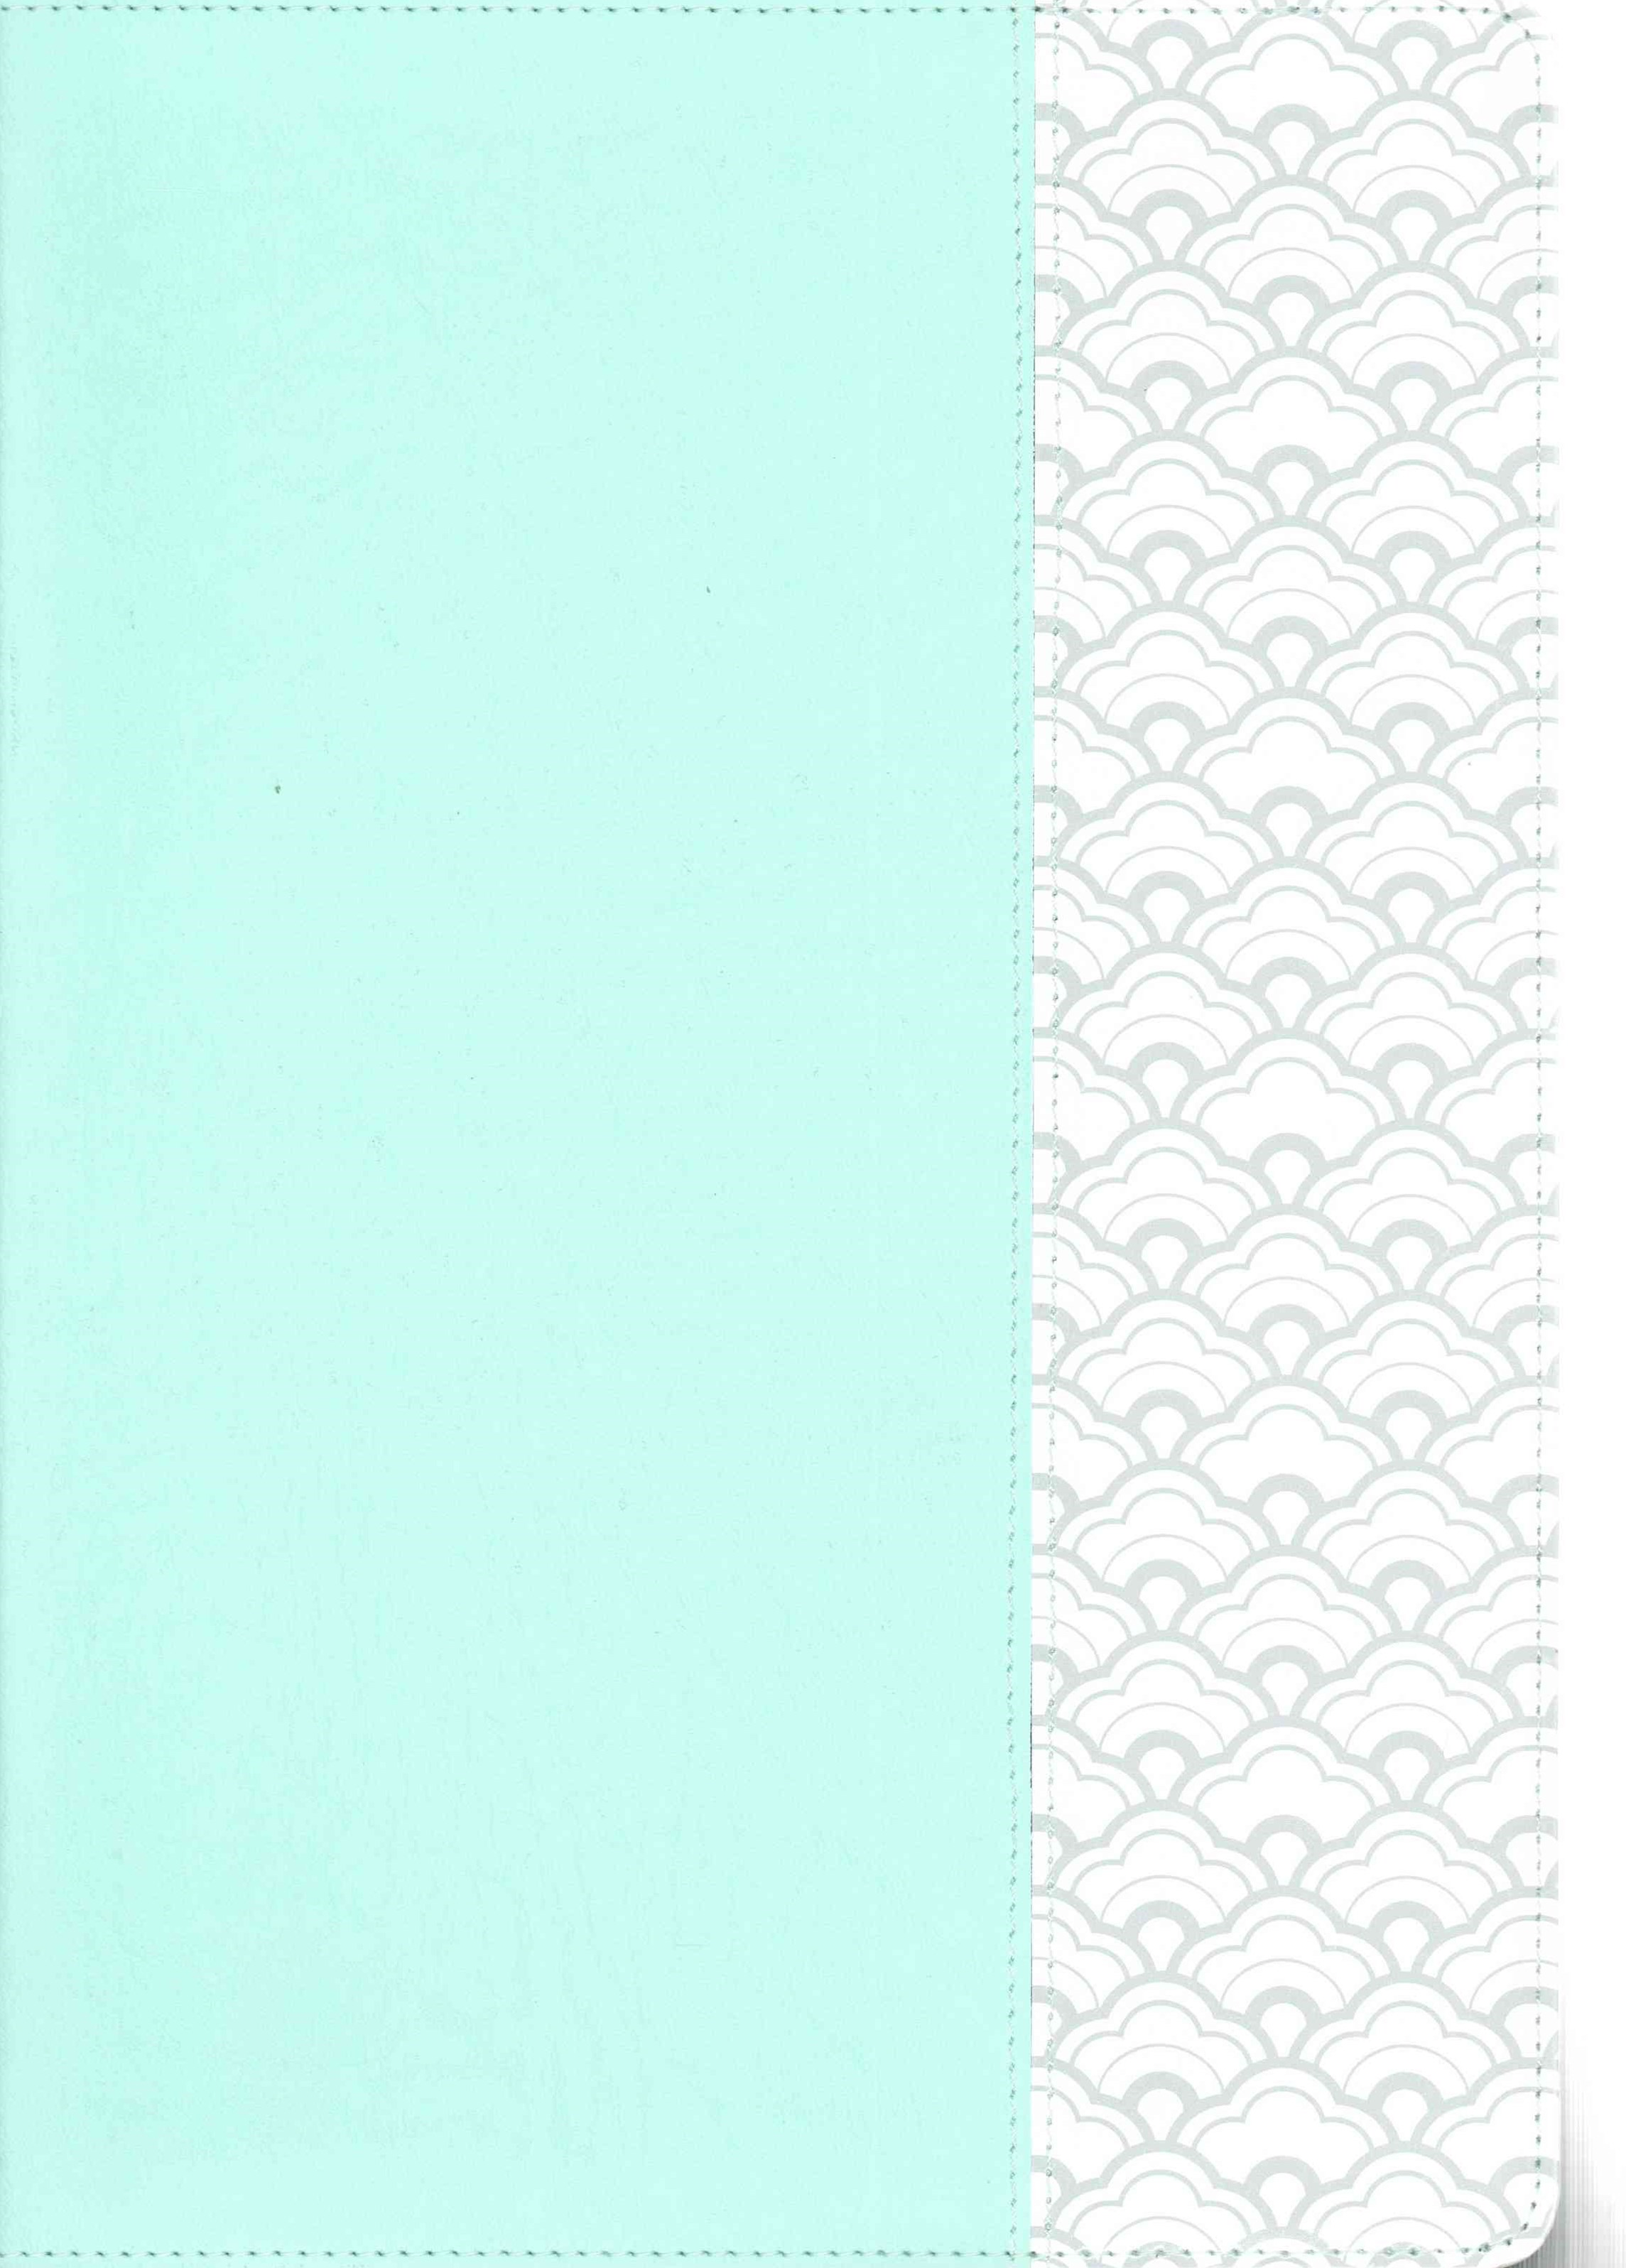 NKJV Super Giant Print Reference Bible, Mint Green LeatherTouch, Indexed